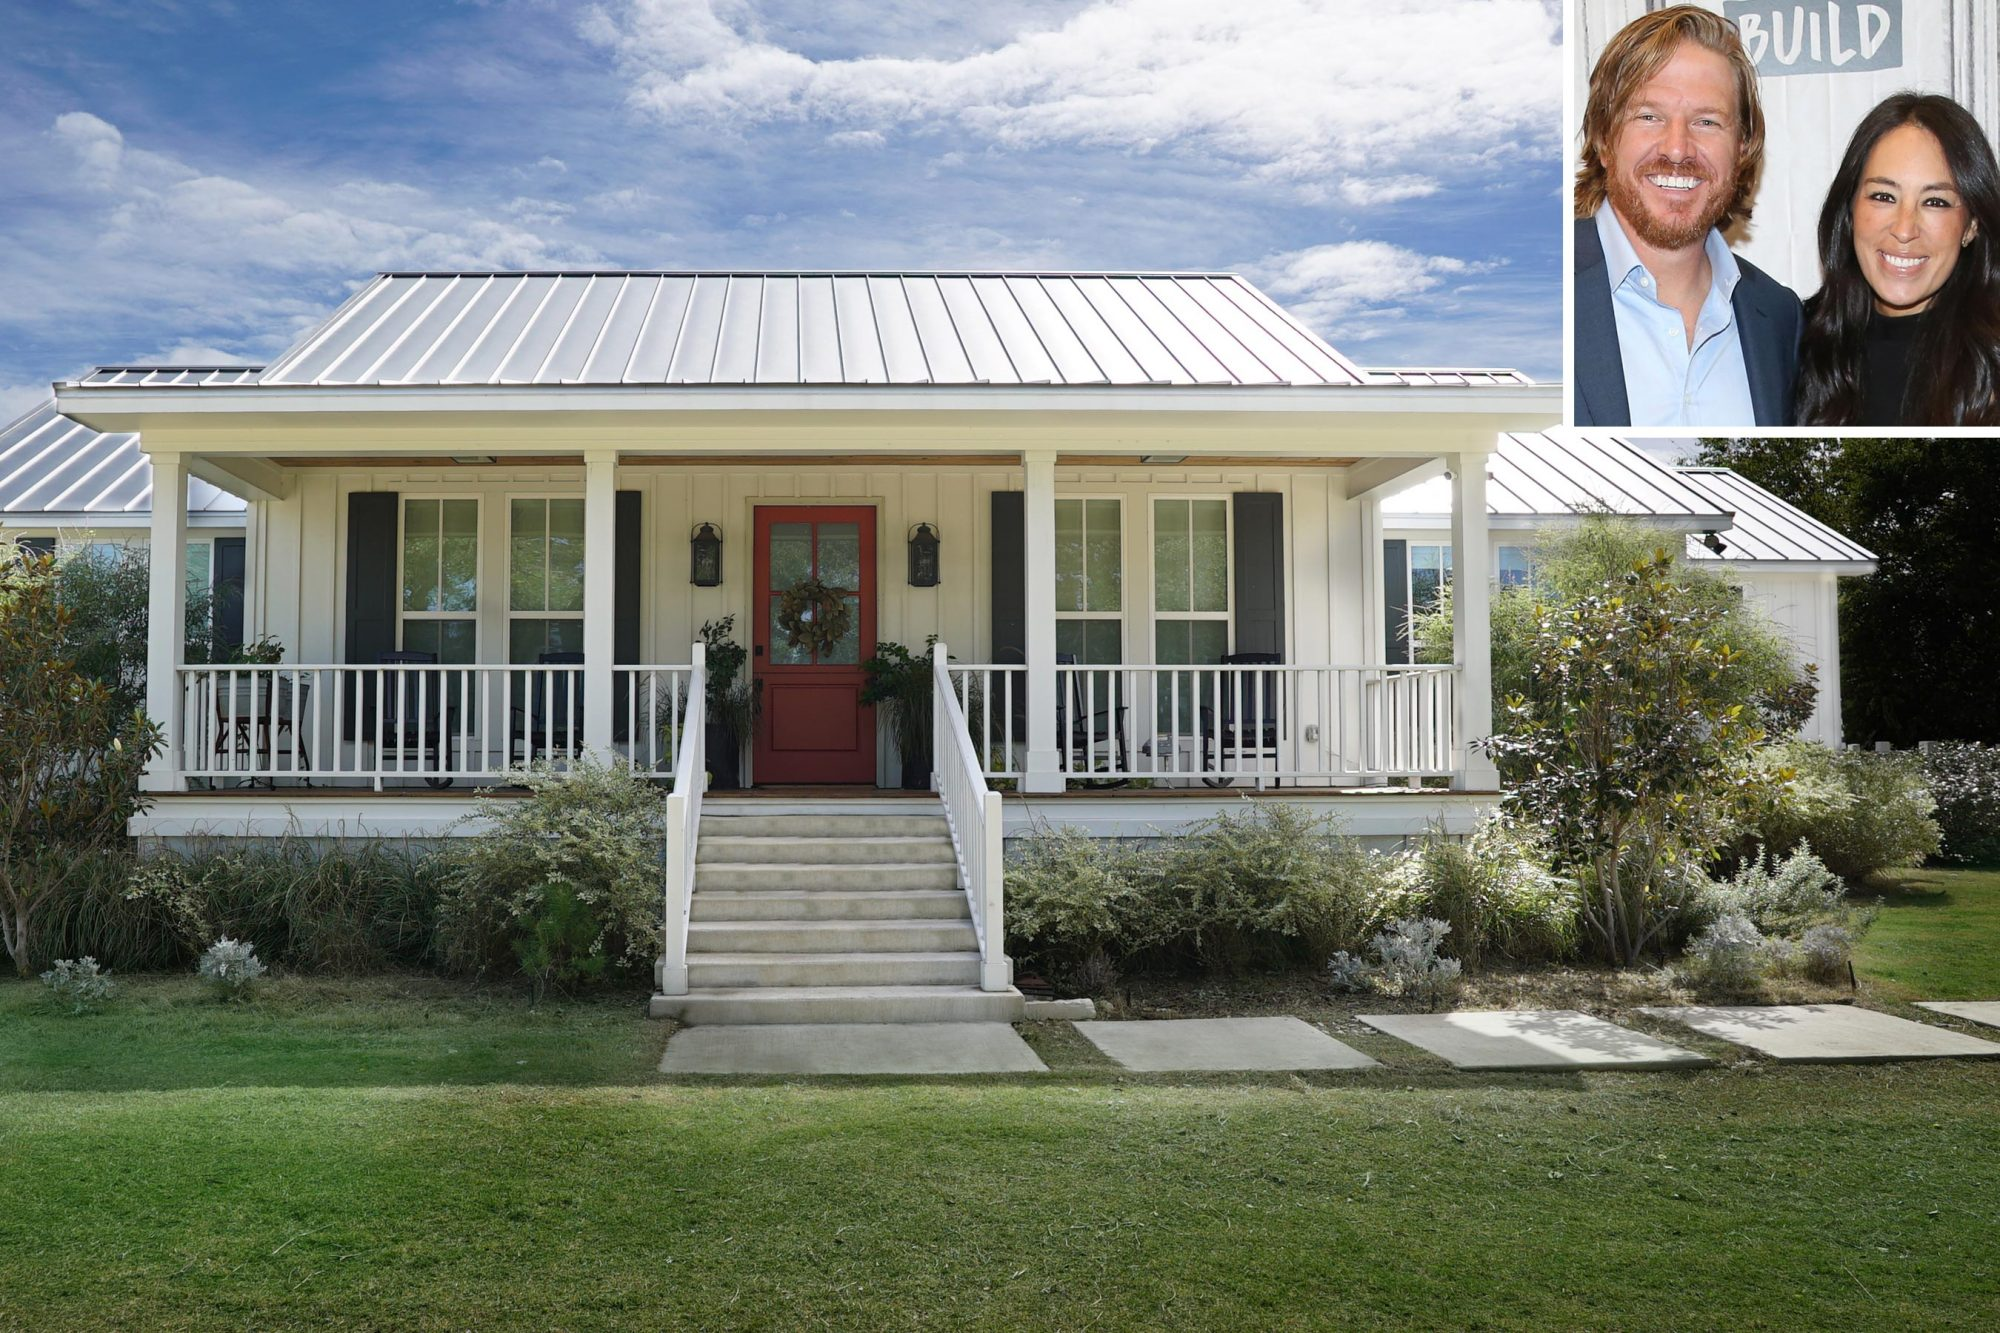 You Can Stay in One of Chip and Joanna Gaines's Fixer Uppers—Now for Rent on Airbnb chip-and-joanna-gaines-home